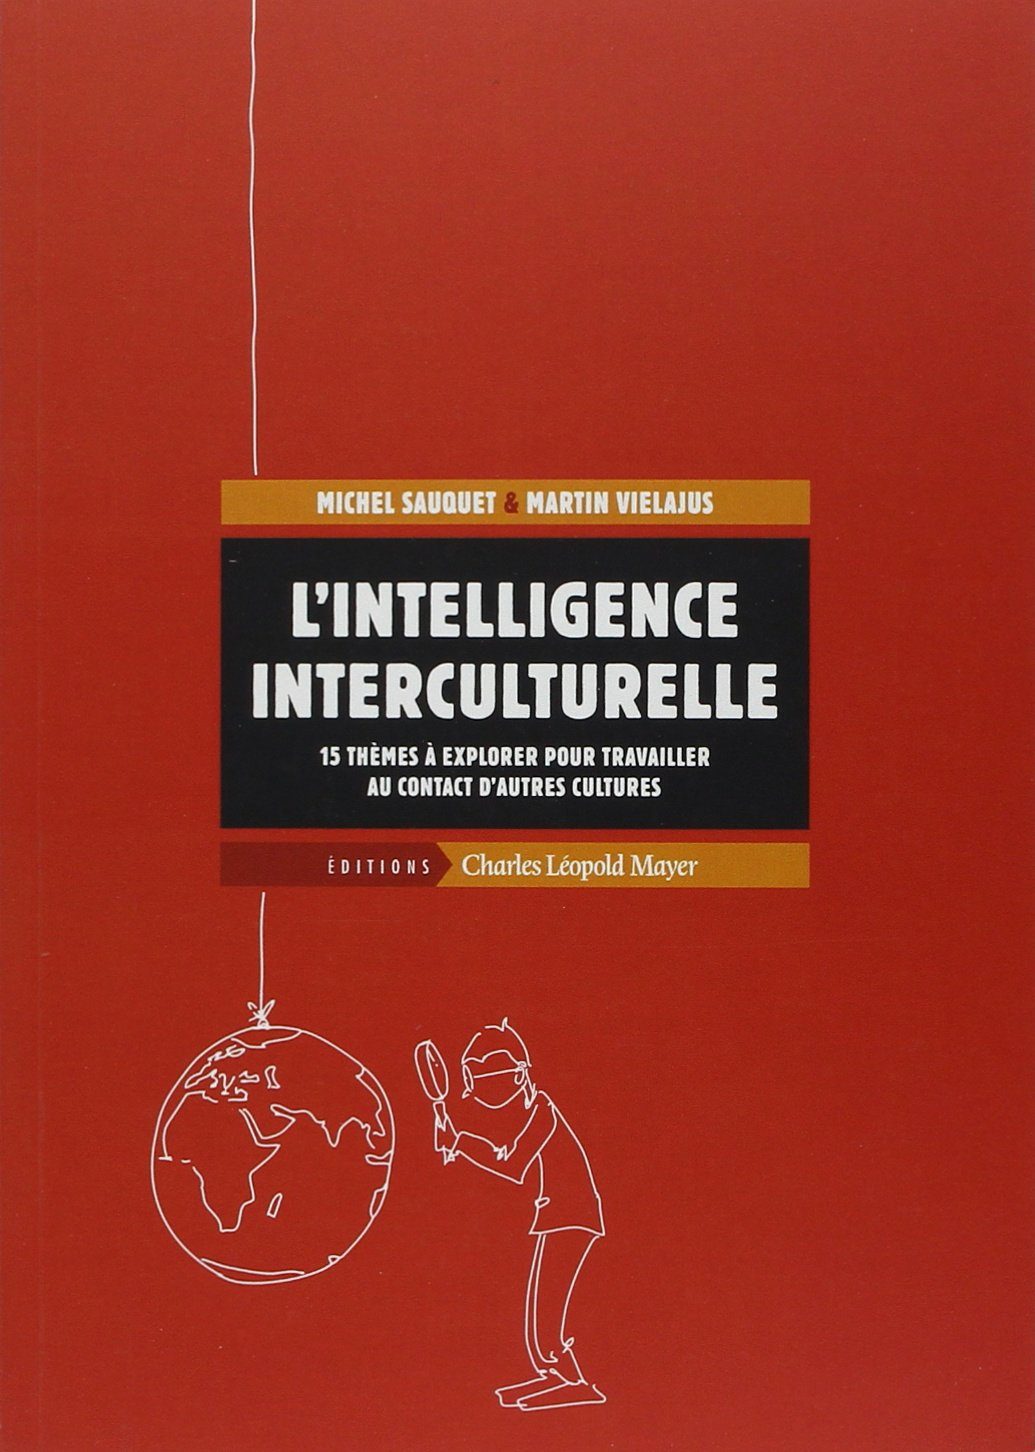 L'intelligence interculturelle 1ère de couverture